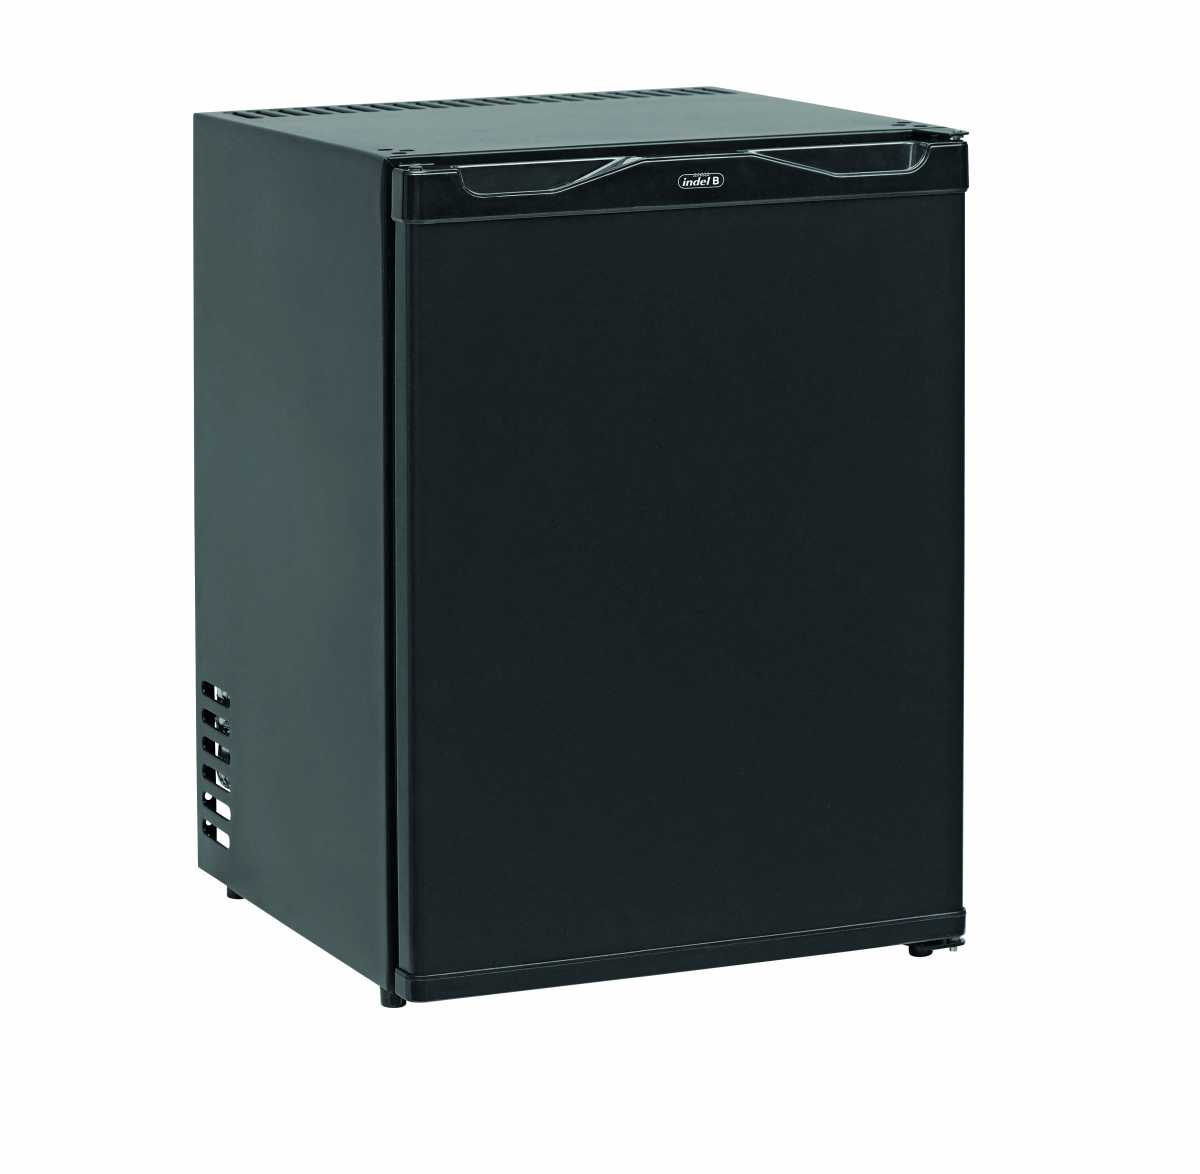 INDEL B Iceberg 40 Plus Minibar